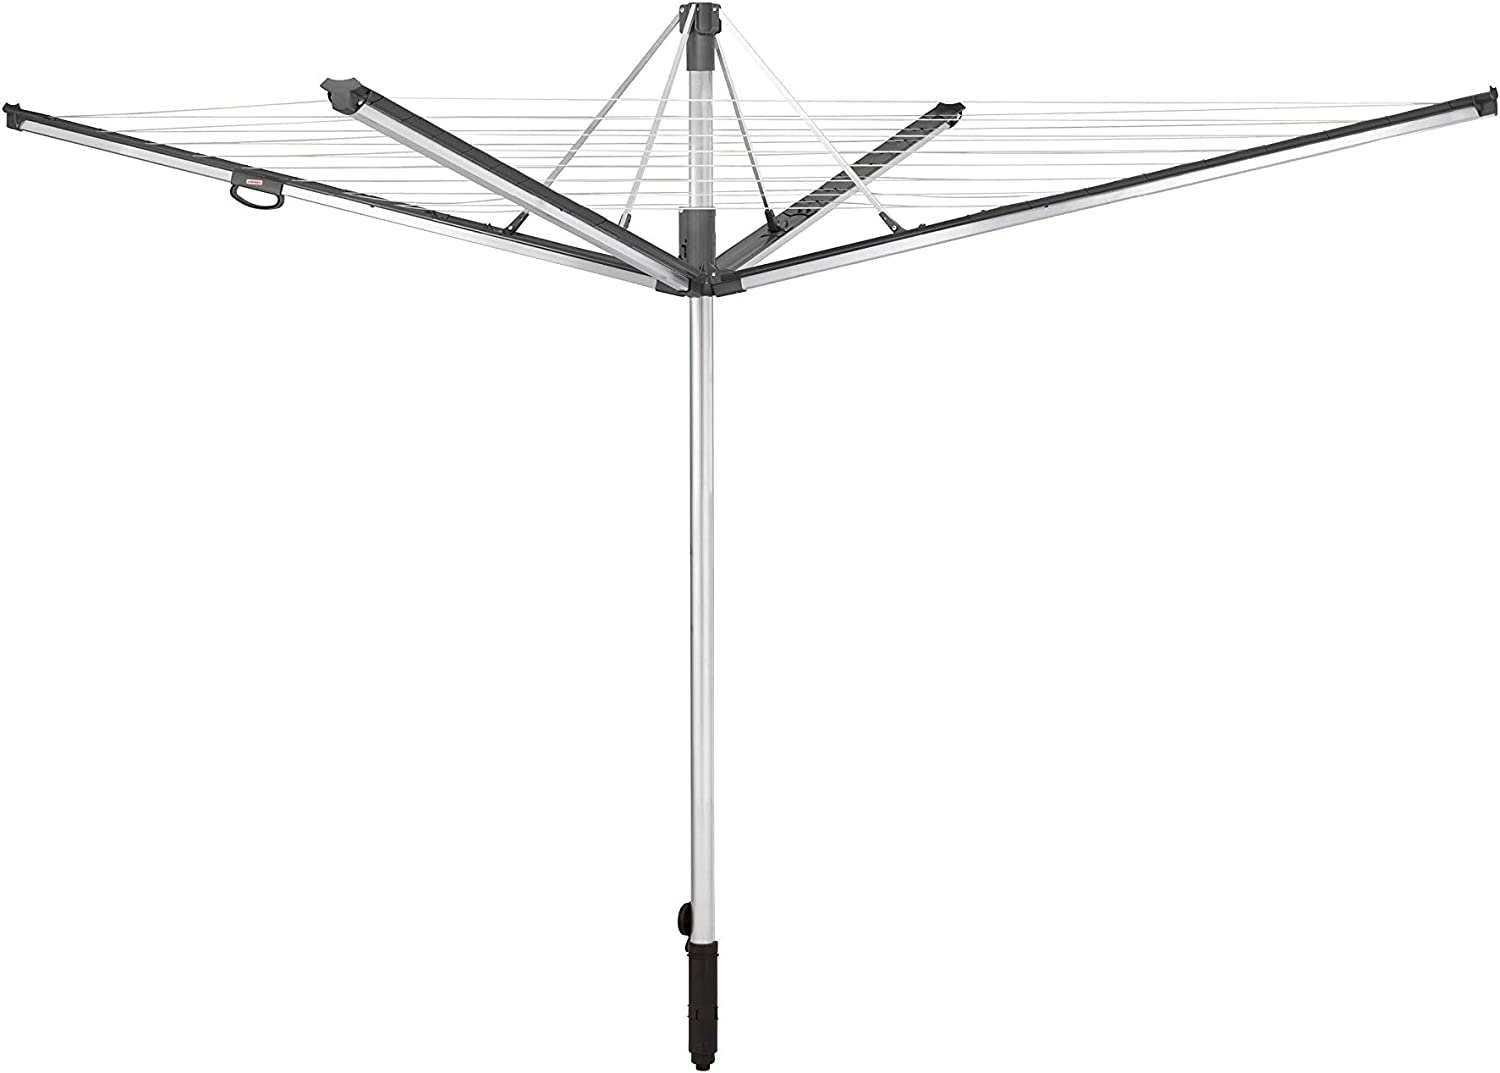 Leifheit Linomatic 600 Plus 60m Rotary Clothes Line, Height Adjustable Arms, Stay Clean Retractable Washing Line, Rust-Free Aluminium Outdoor Clothes Airer 60 m Plus Grey